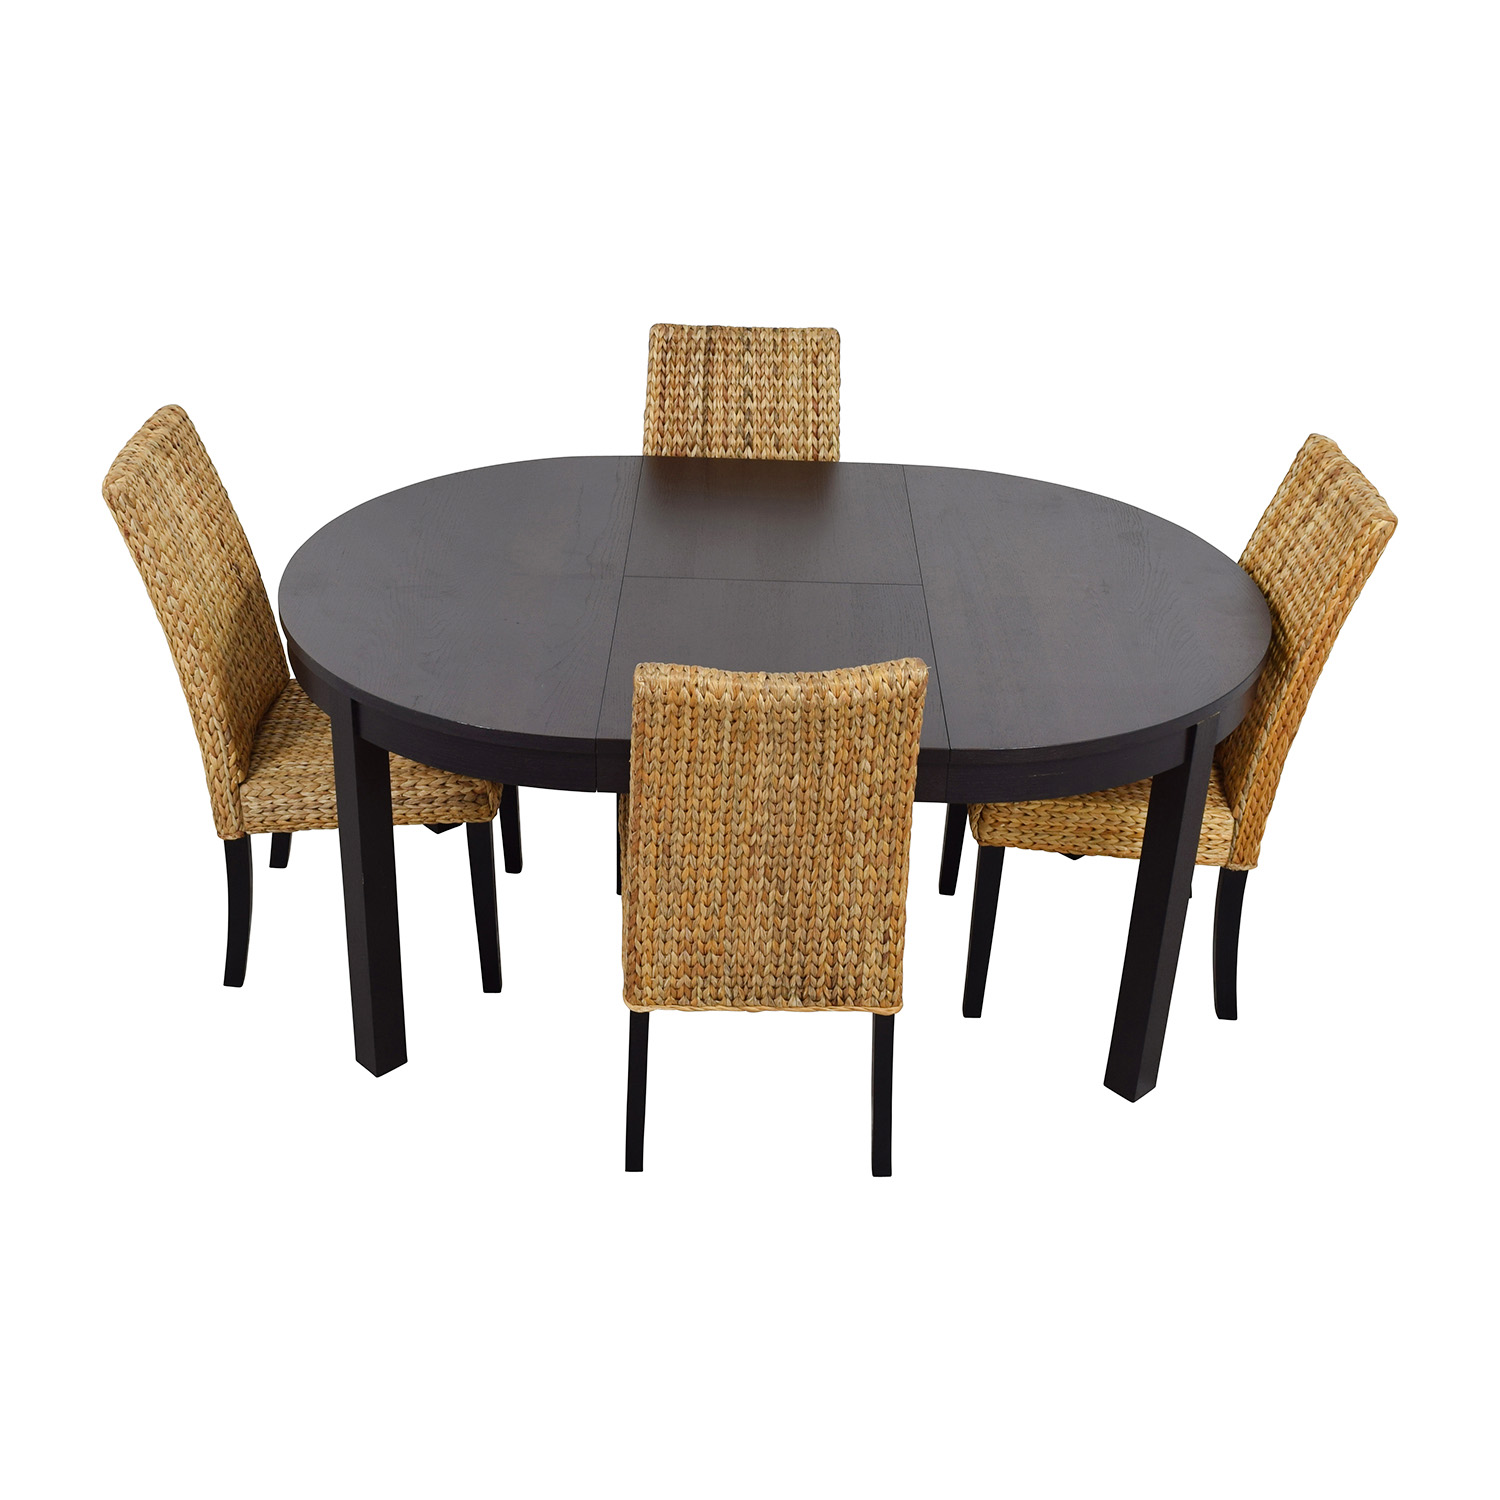 Round Dining Table And Chairs 66 Off Macy 39s And Ikea Round Black Dining Table Set With